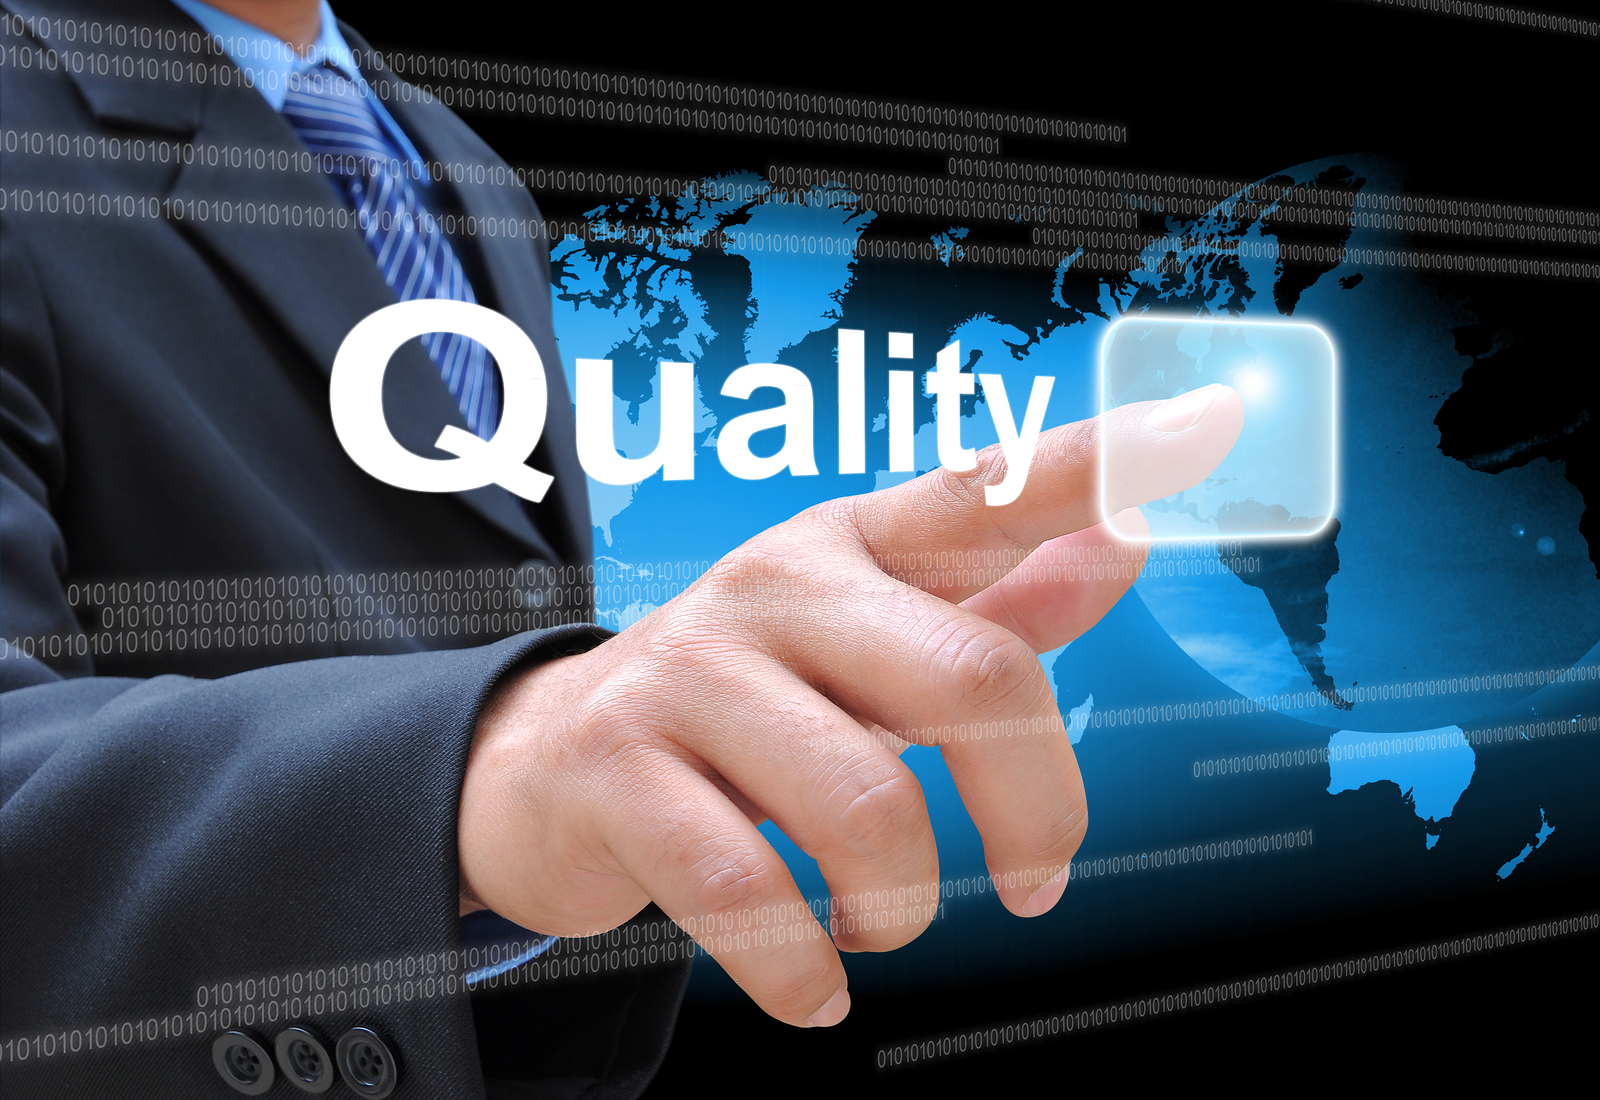 Quality is Control